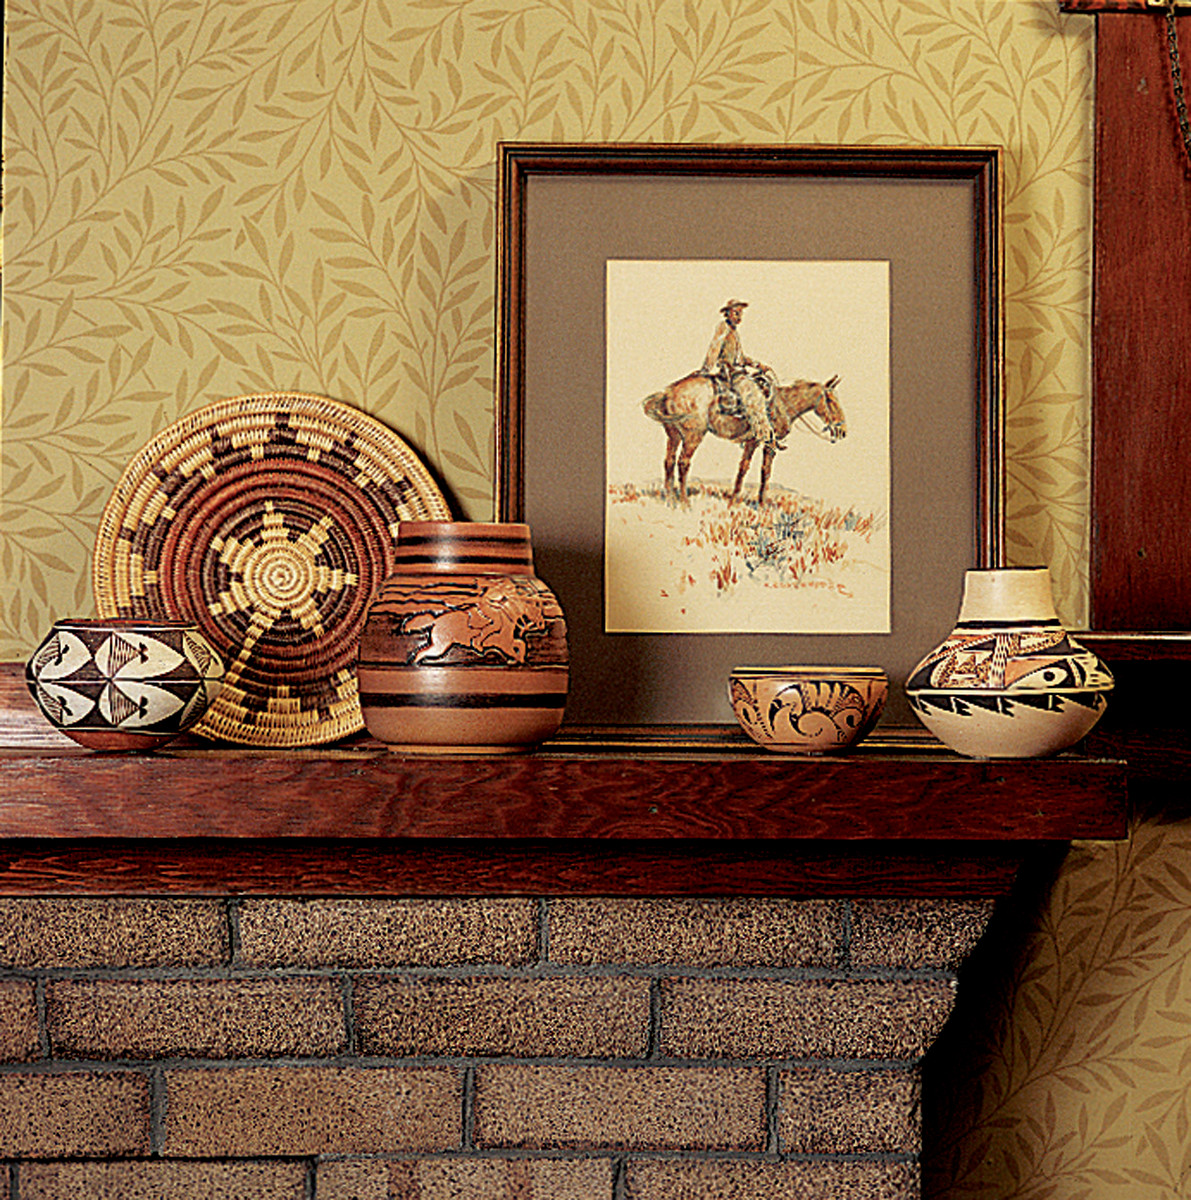 brick mantel Arts & Crafts bungalow Native American art